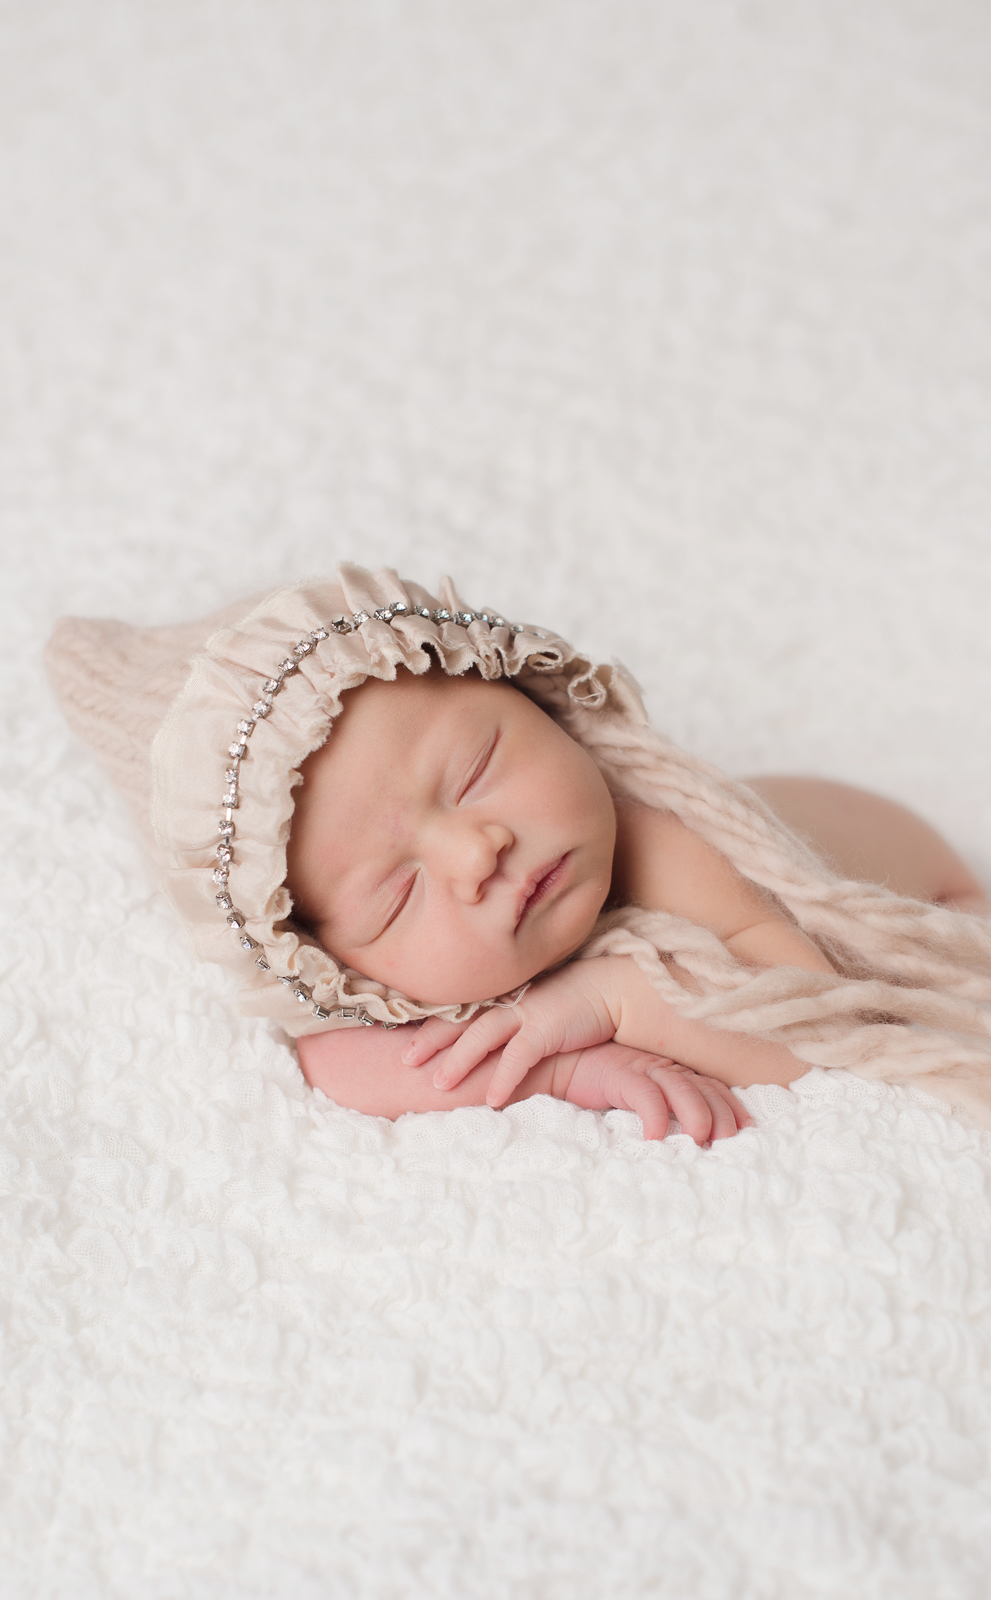 Baby-Photographer-Newborn-Photography-Bozeman-Billings-Montana-Tina-Stinson-Photography-2330.jpg